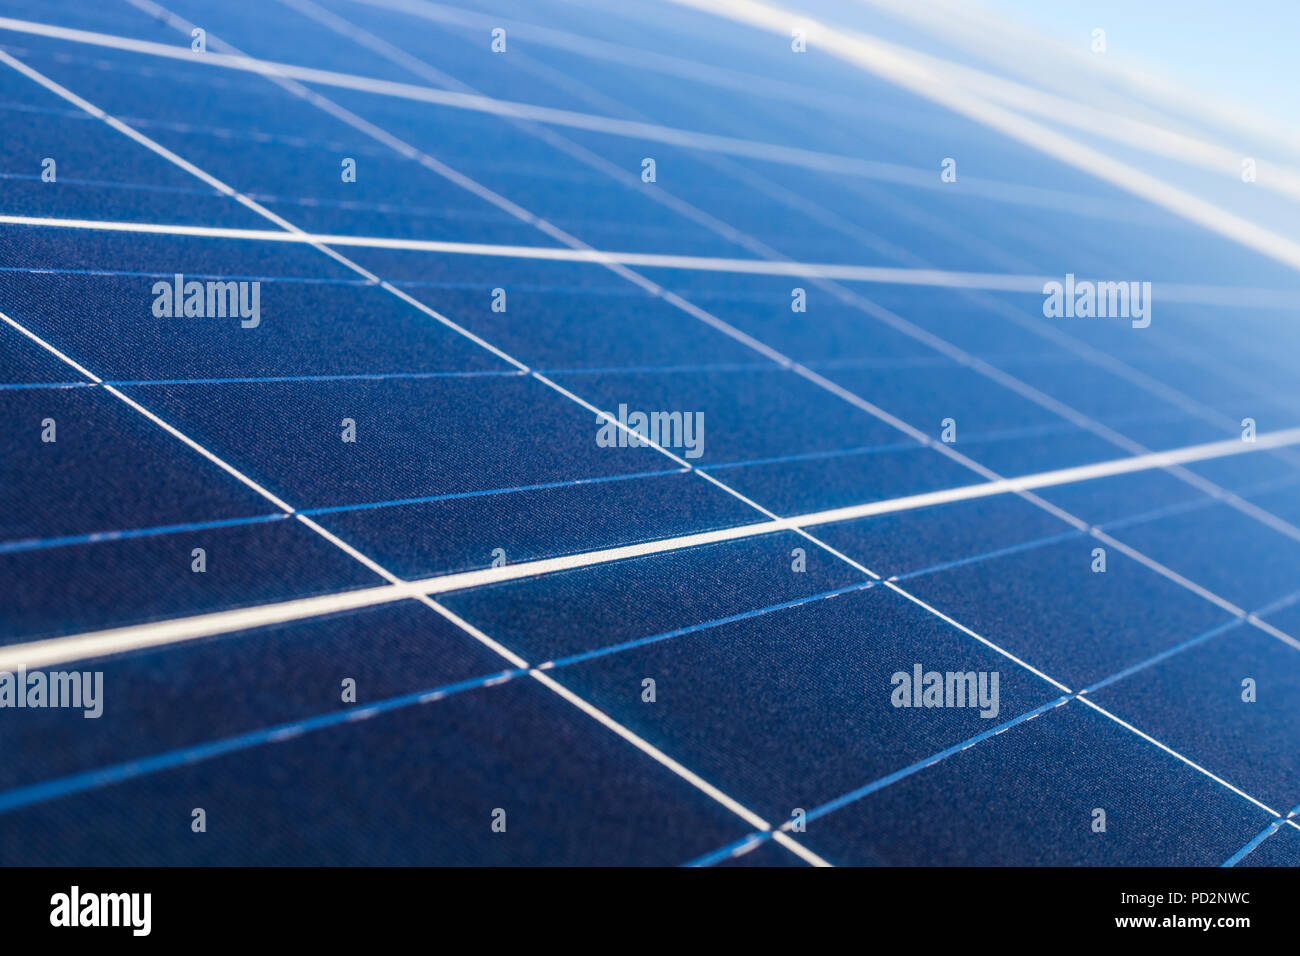 Solar Energy, a clean technology to reduce CO2 emissions, the best place for Solar Energy is Atacama Desert at Chile. Solar modules and cells. - Stock Image